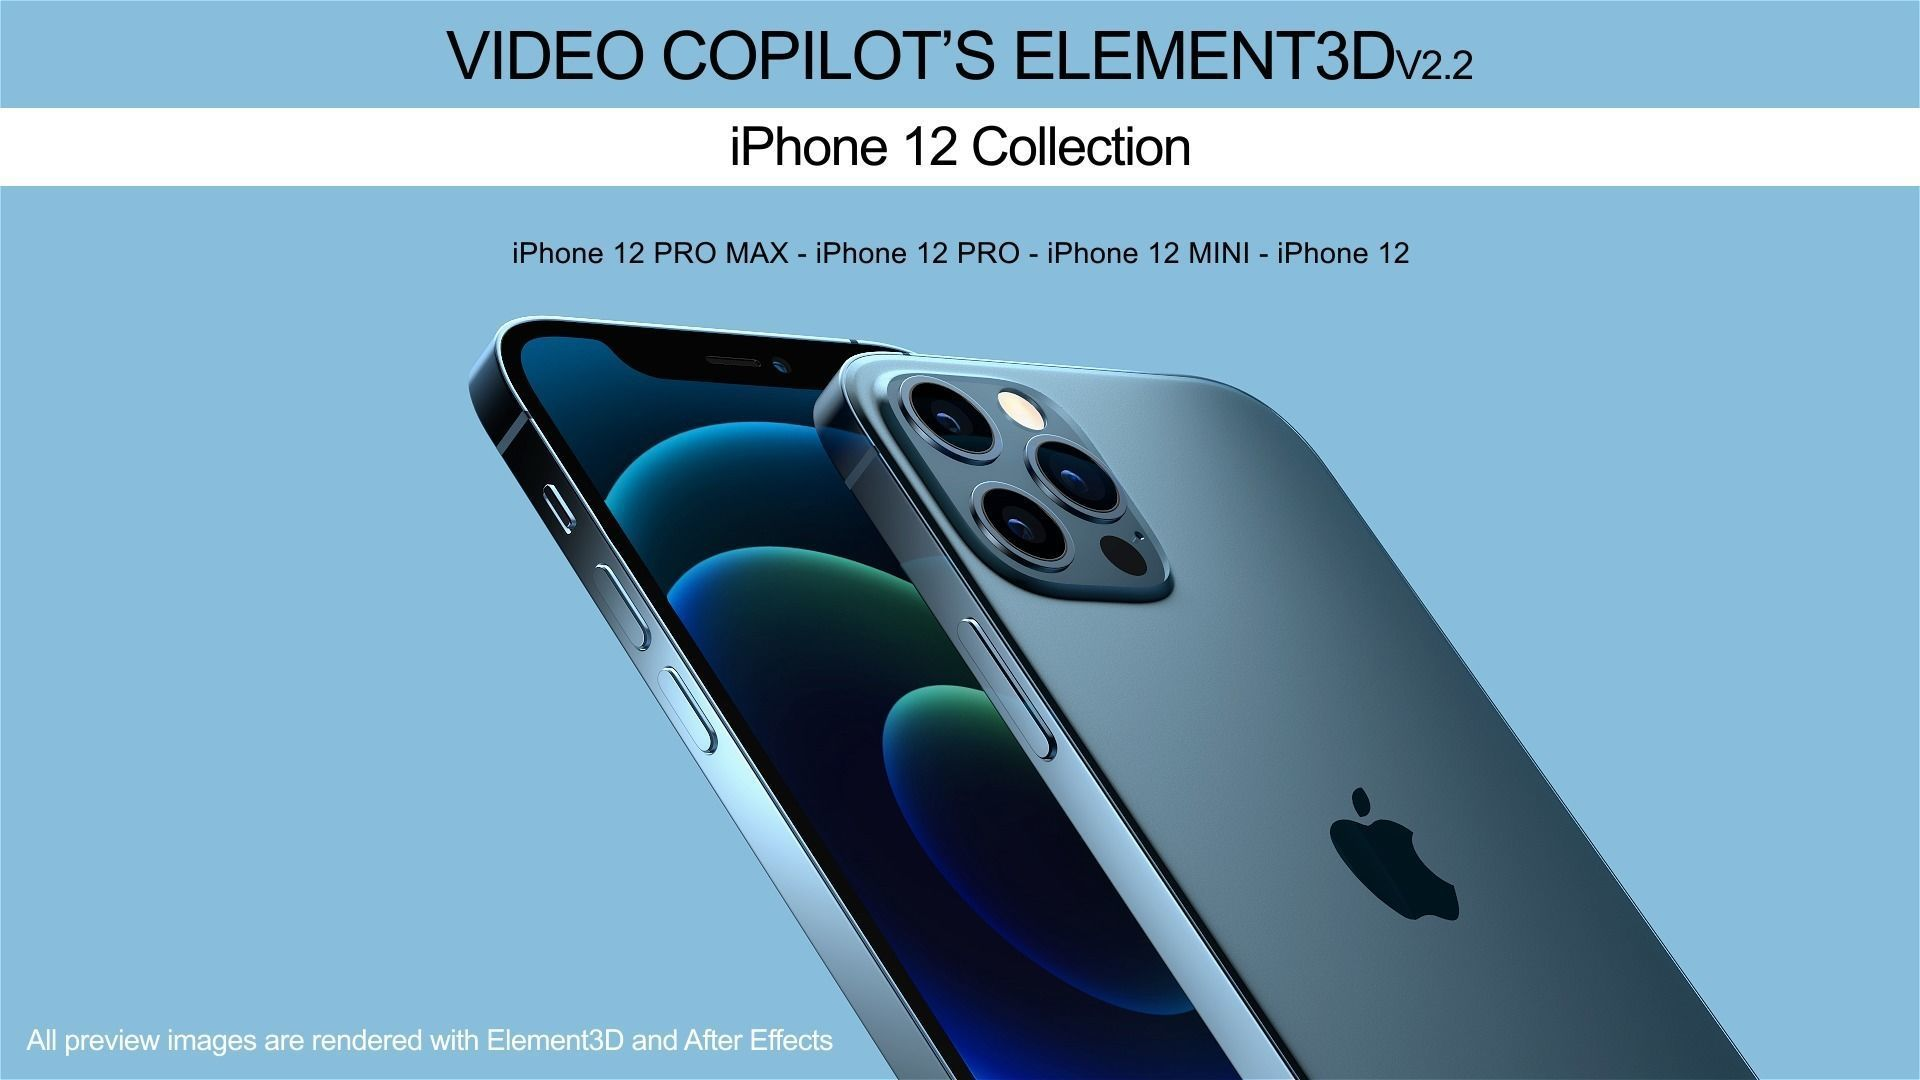 Element3D - iPhone 12 Collection